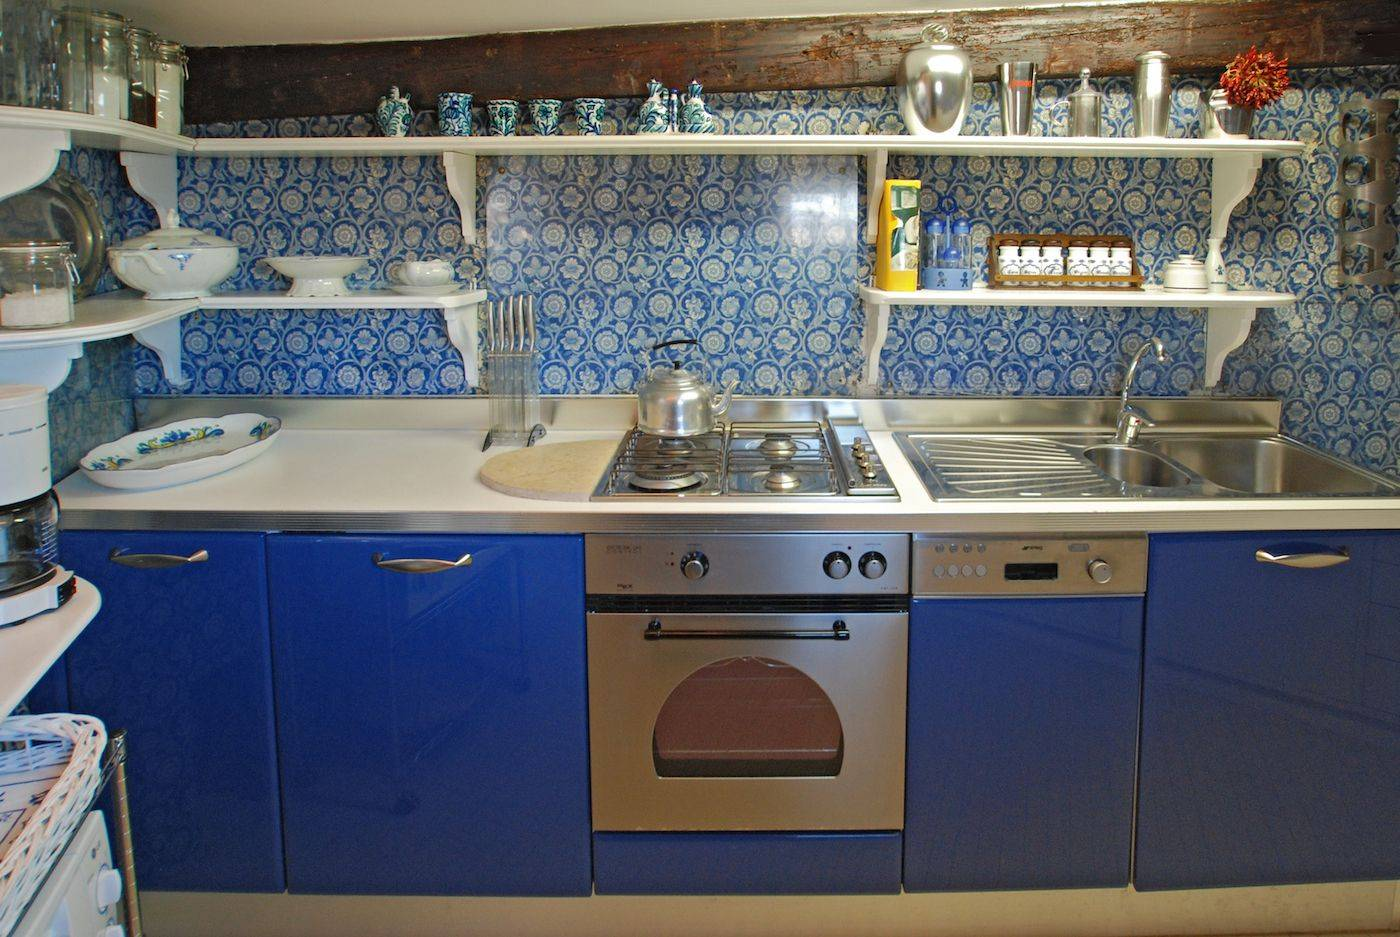 in the attic level there is a compact but well equipped kitchen